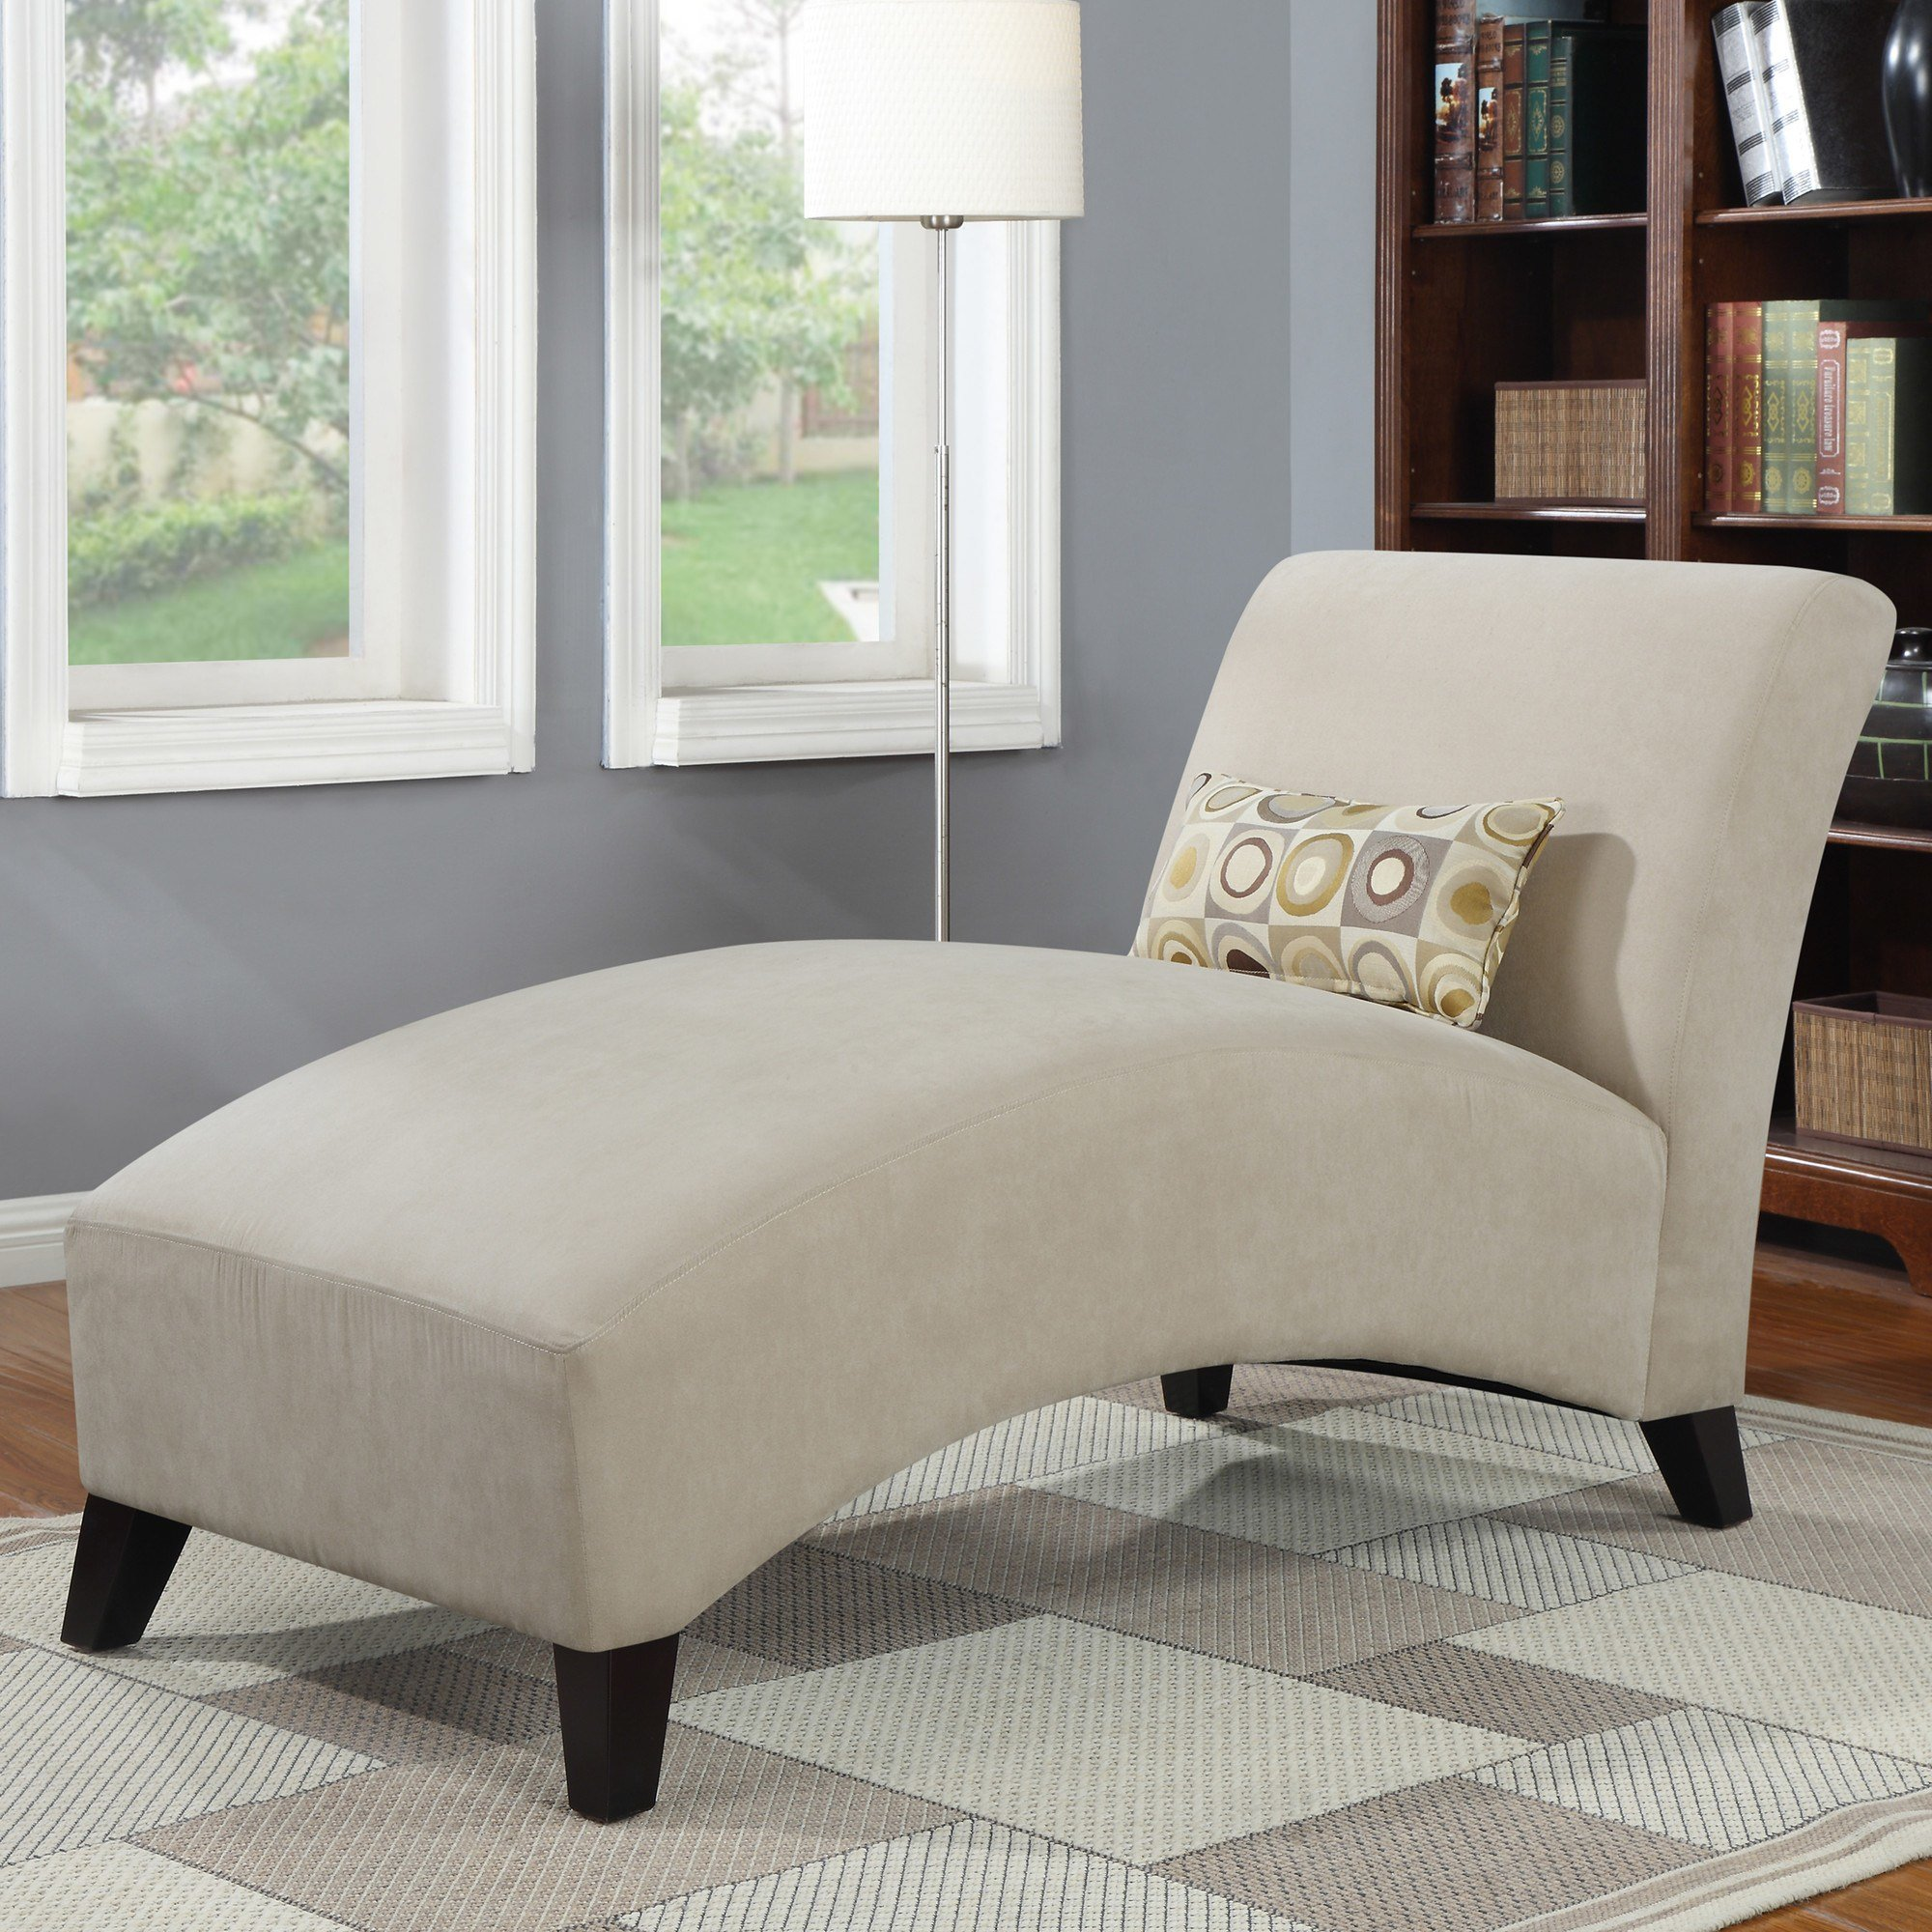 Best Chaise Lounge Modern Furniture Sofa Chairs Bedroom Indoor With Pictures